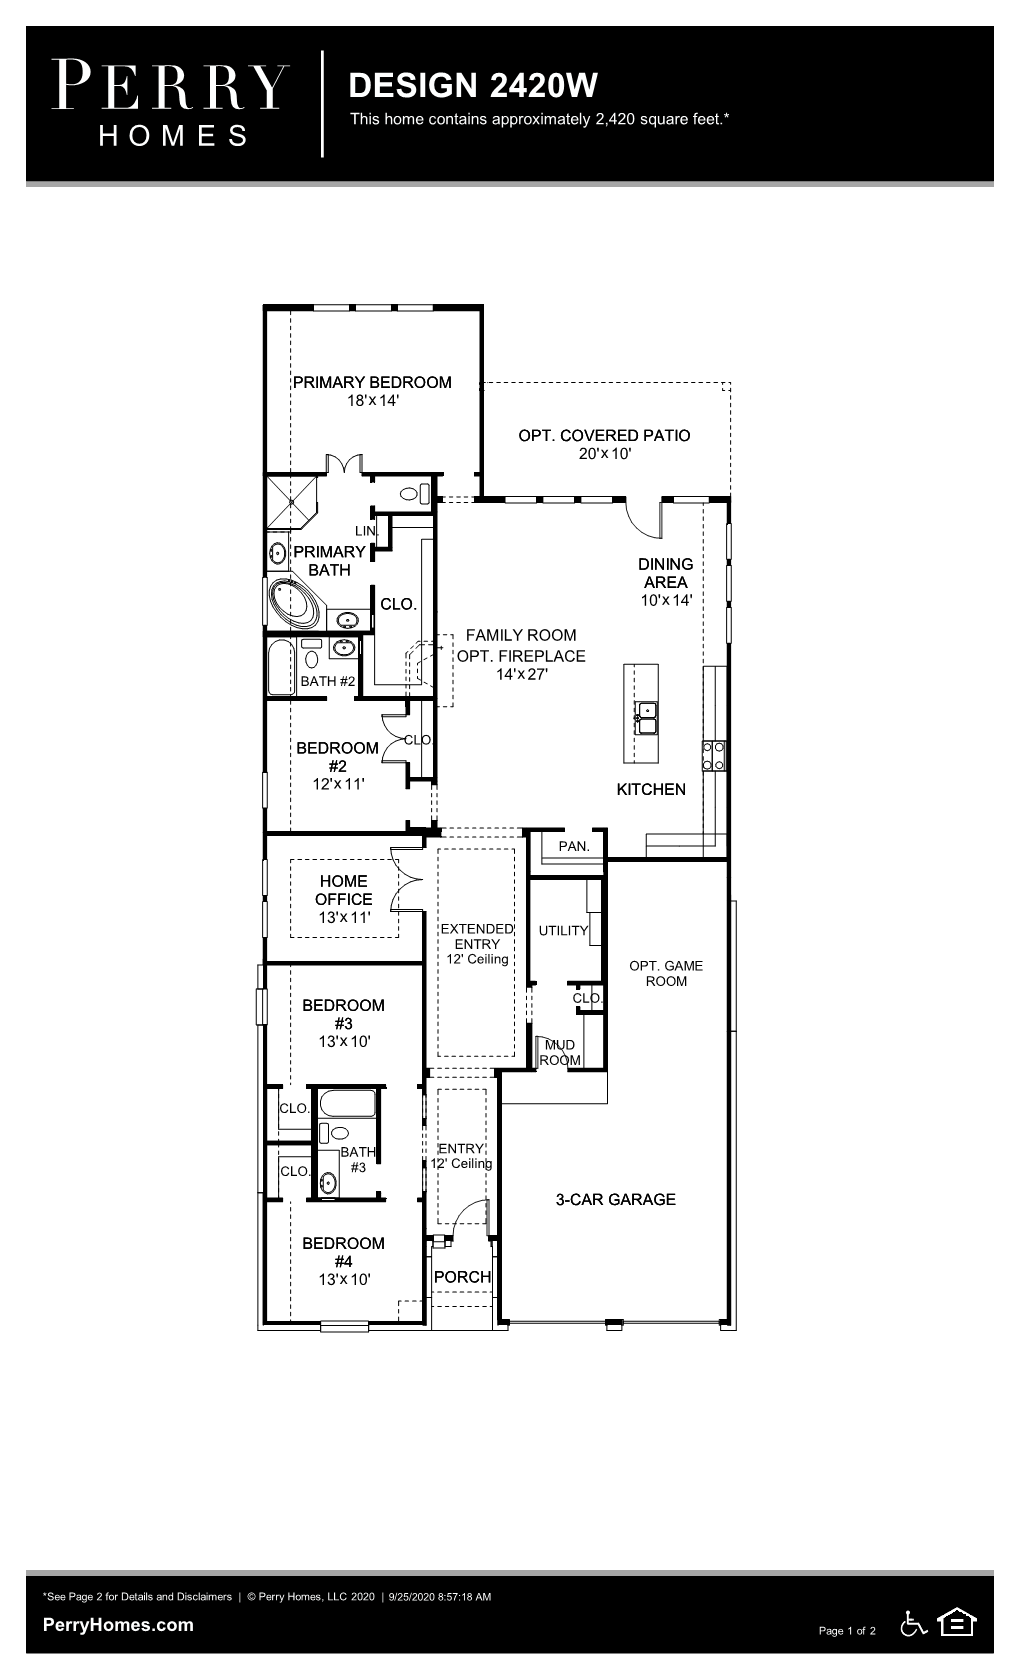 Floor Plan for 2420W